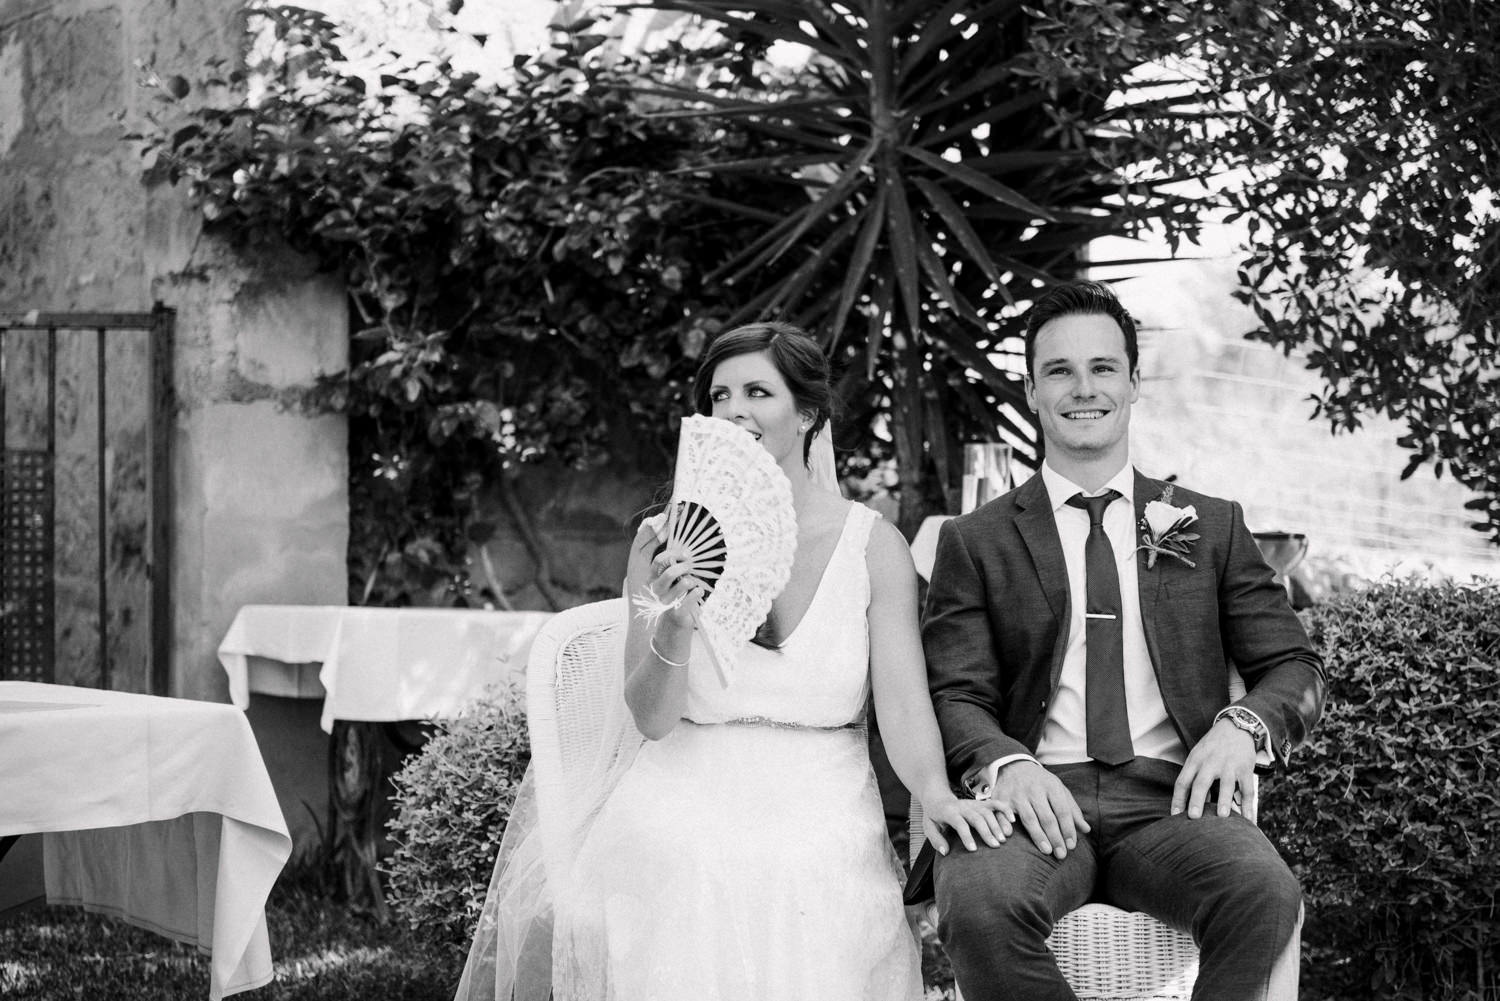 Mallorca destination wedding photographer Babb Photo